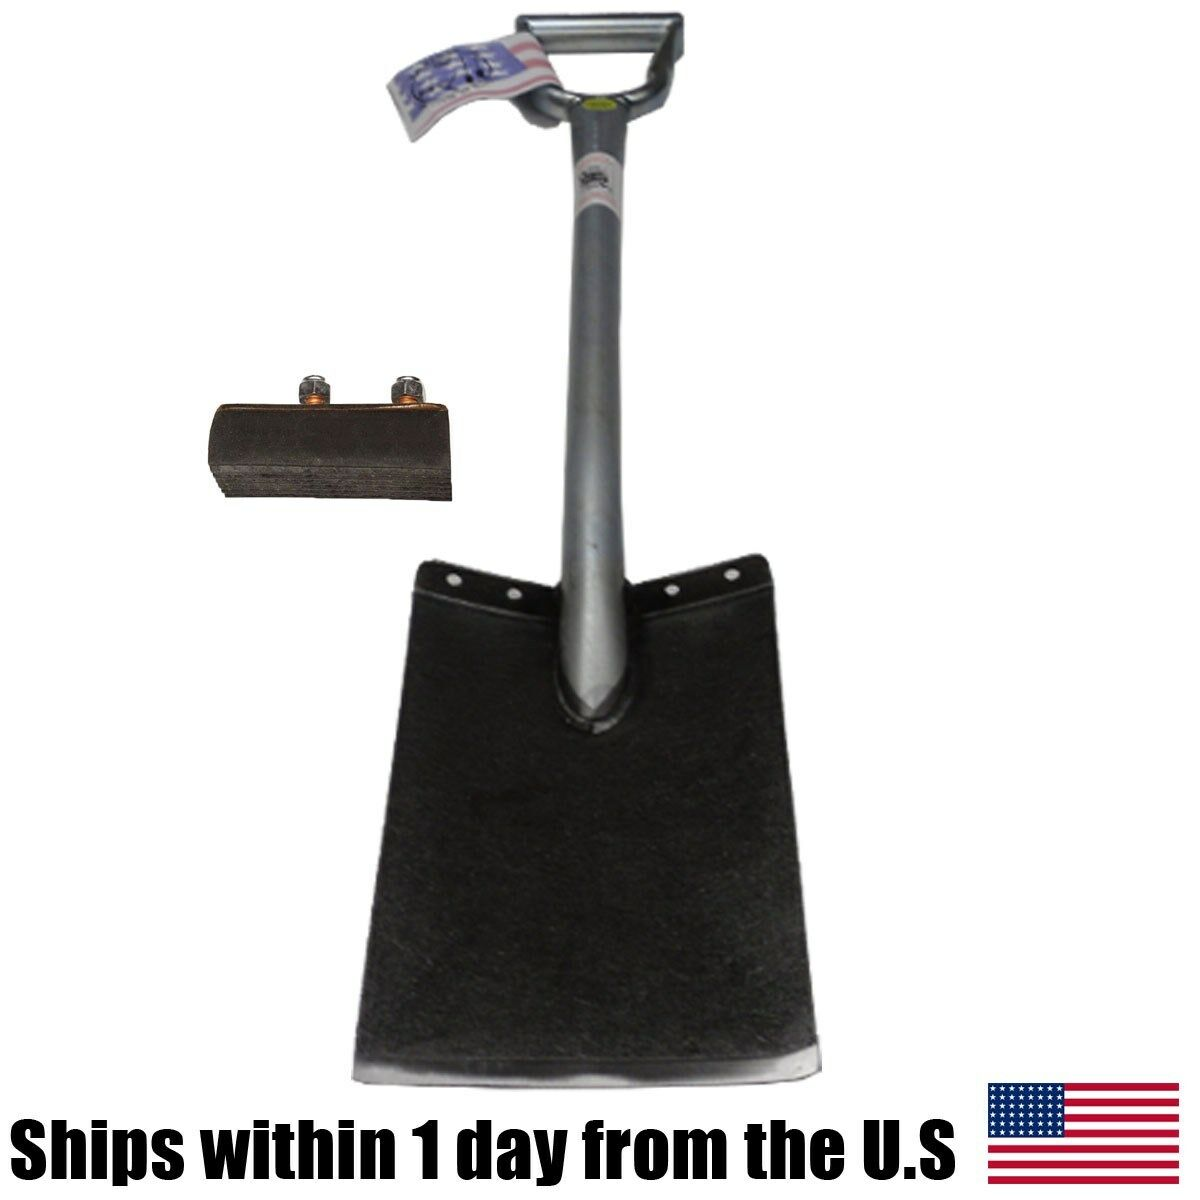 king-of-spades-ks-s-13-all-steel-d-handle-spade-shovel-with-foot-pad